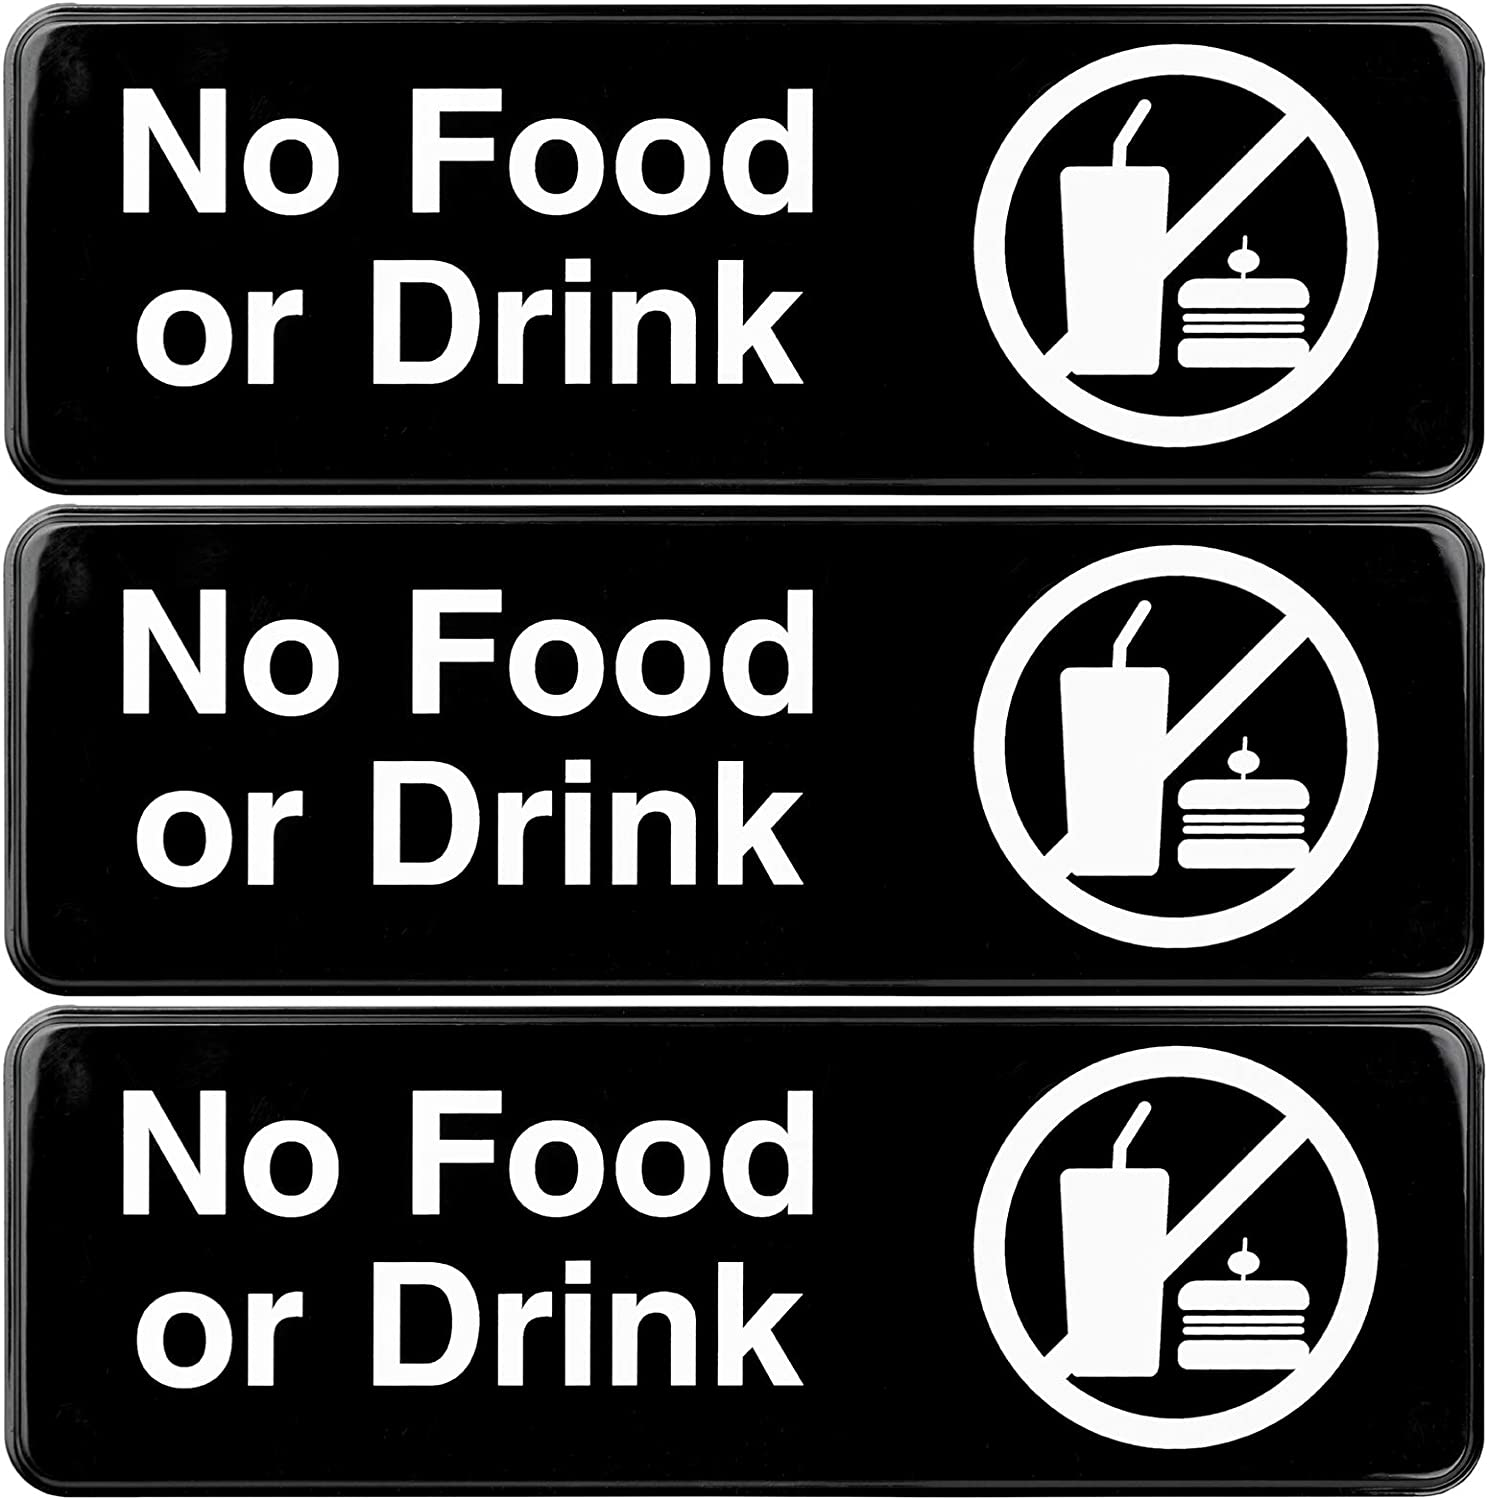 No Food or Drink Sign: Easy to Mount Informative Plastic Sign with Symbols 9x3, Pack of 3 (Black)